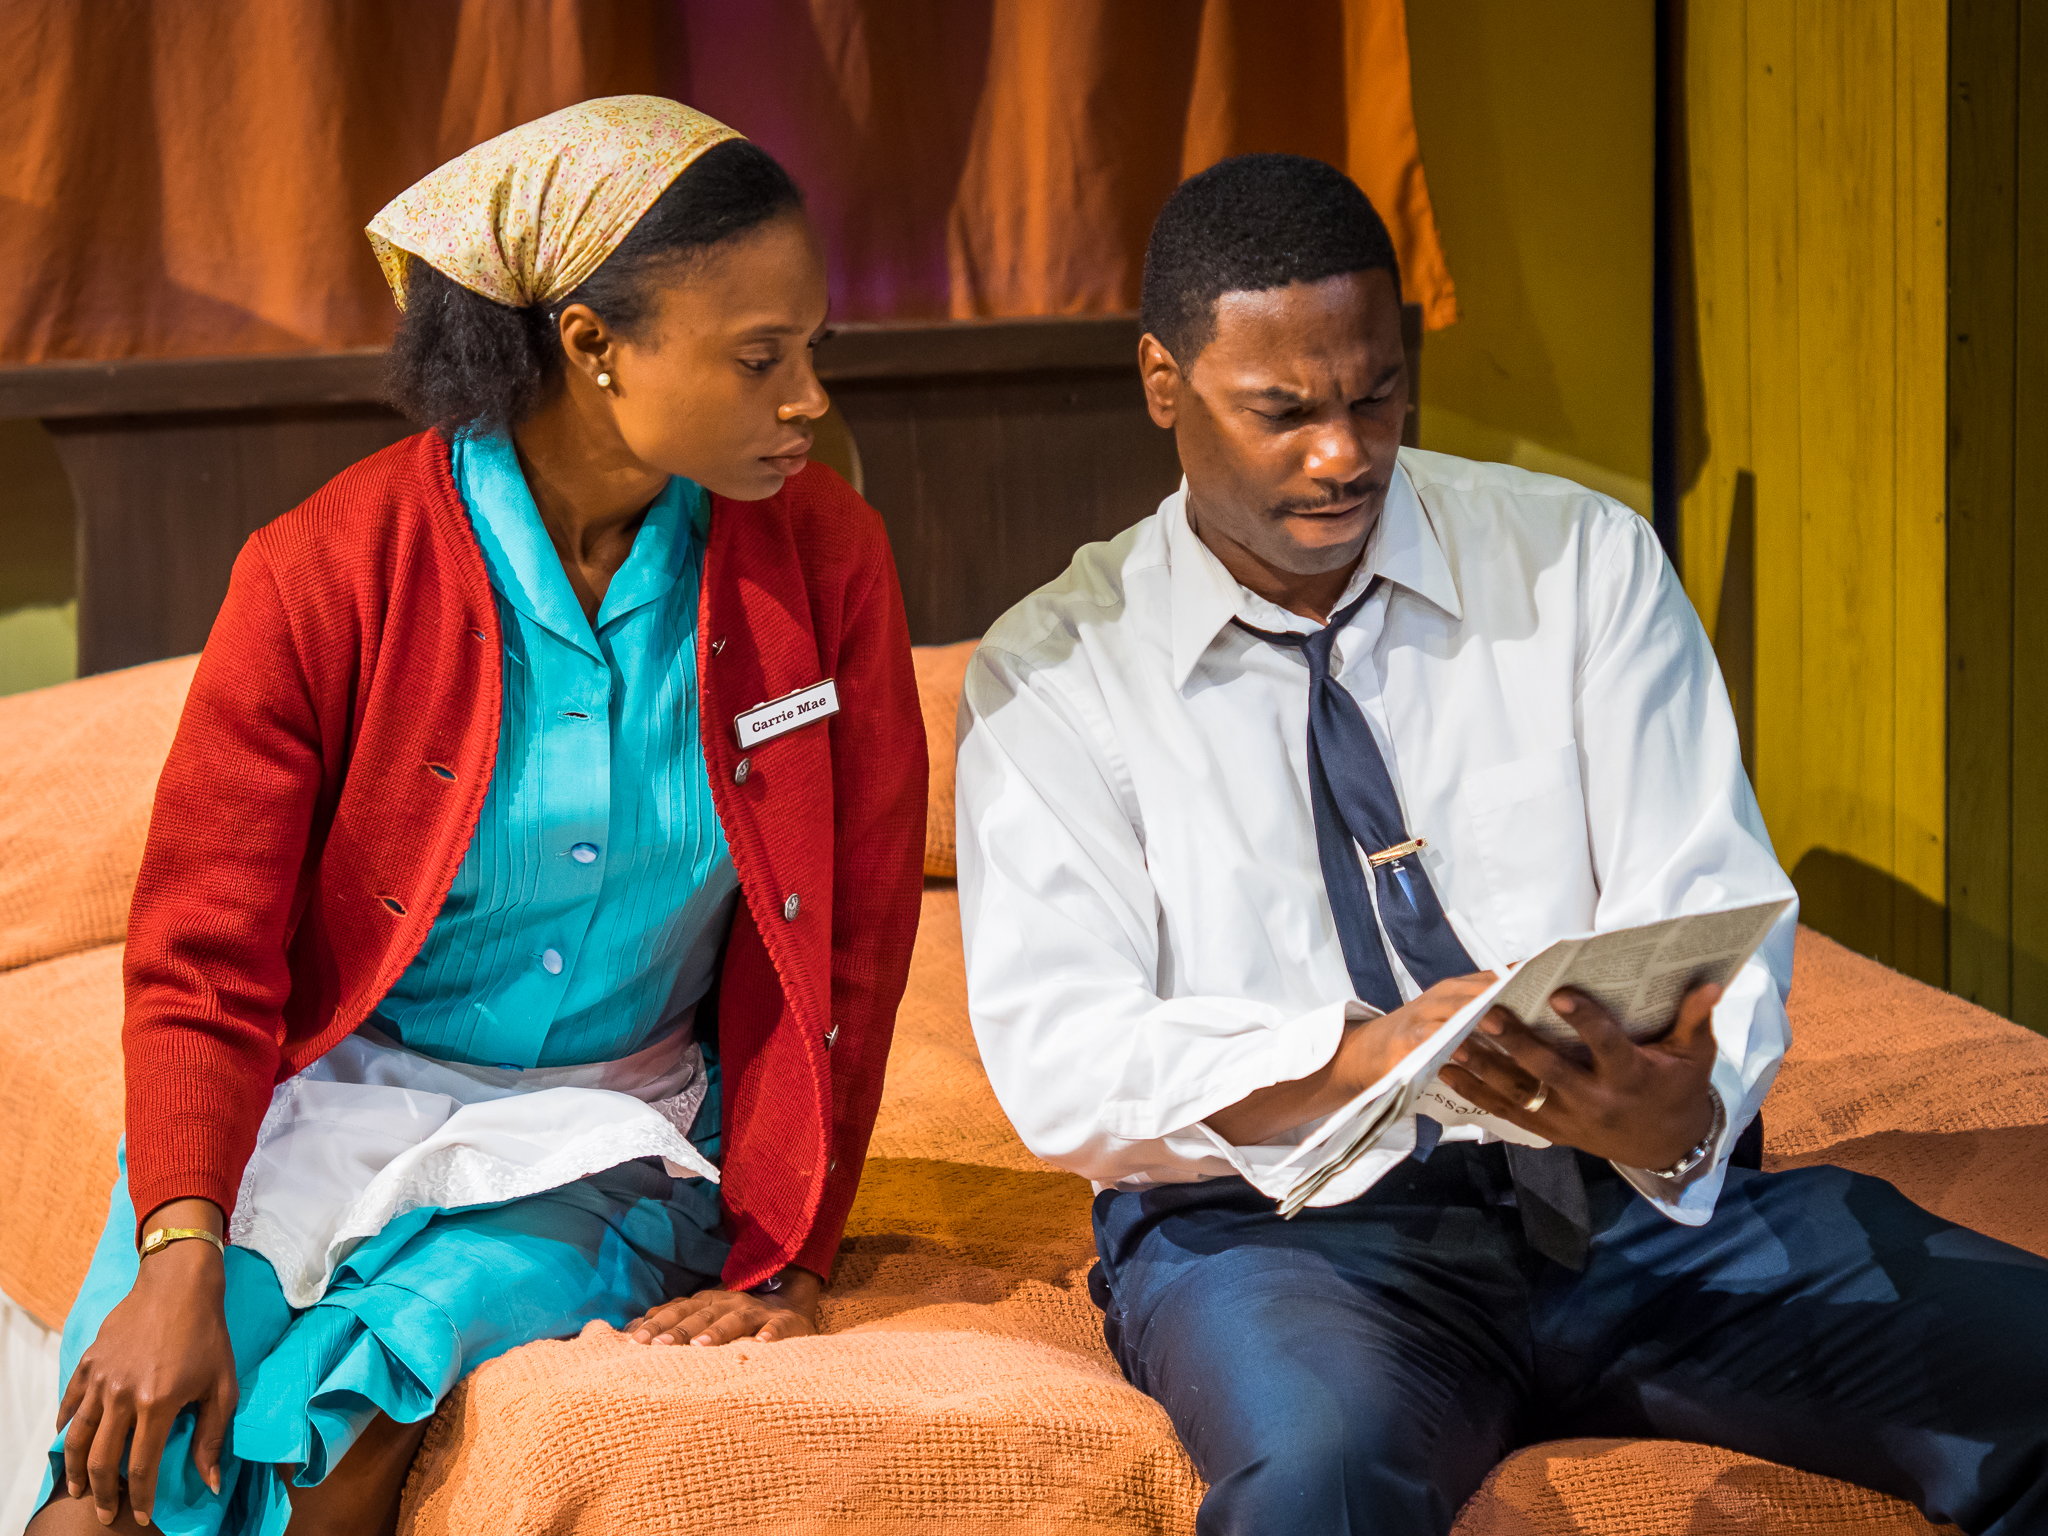 Camae (brianne a. hill) and Dr. King (Reginald André Jackson)